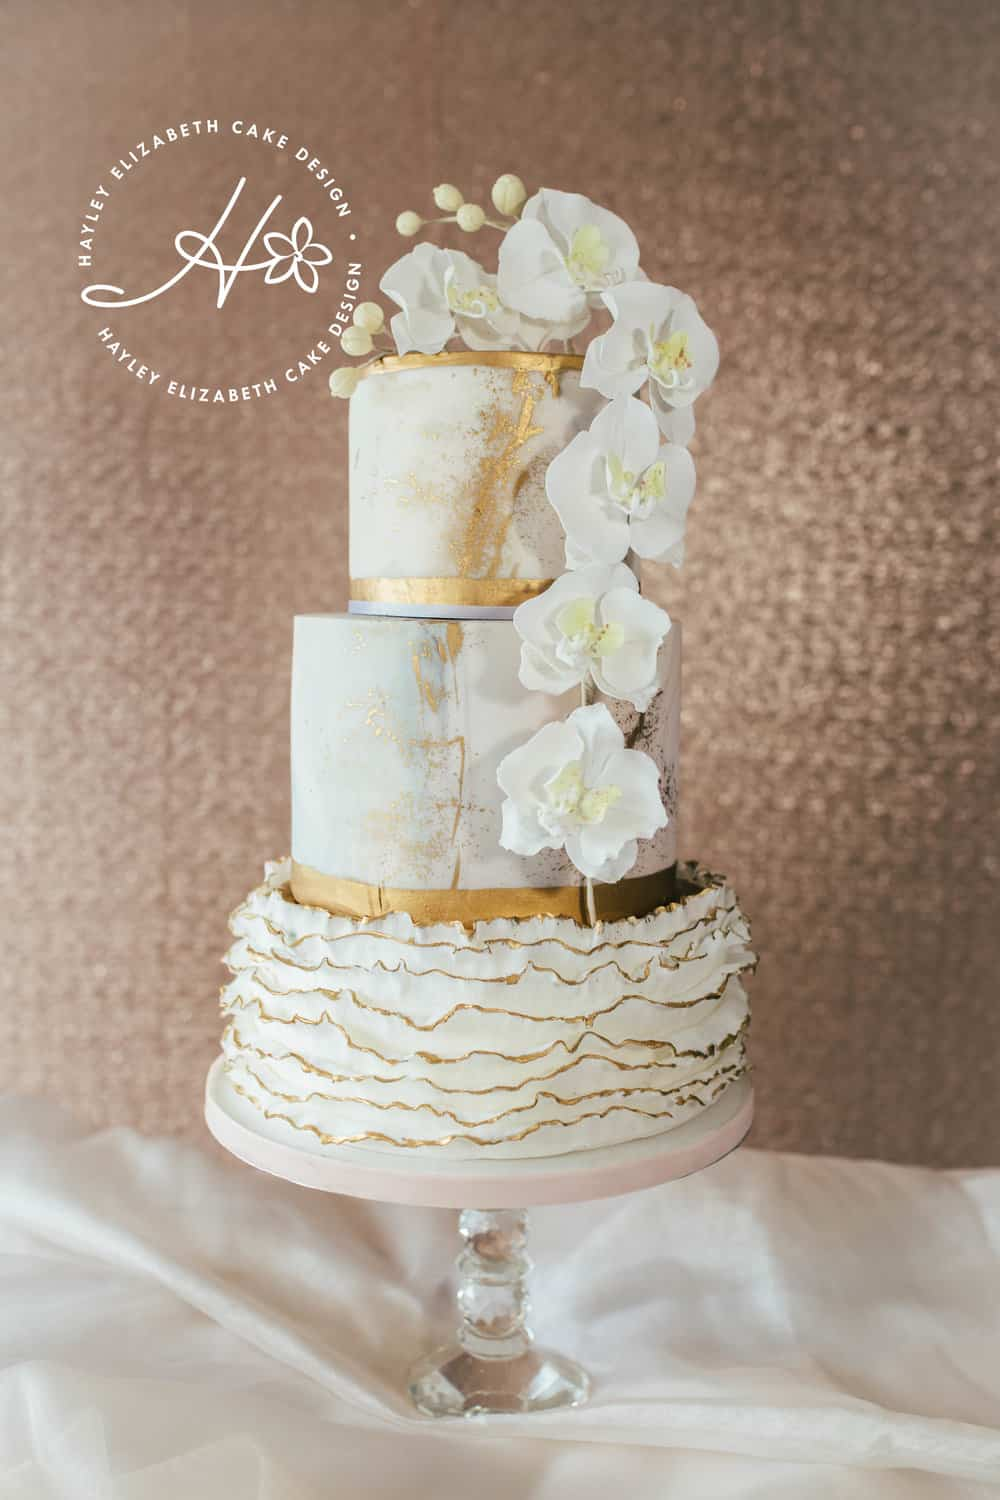 Luxury Wedding Cake With Gold Foil Marble Effect Icing Sugar Flower Orchids And Ruffles